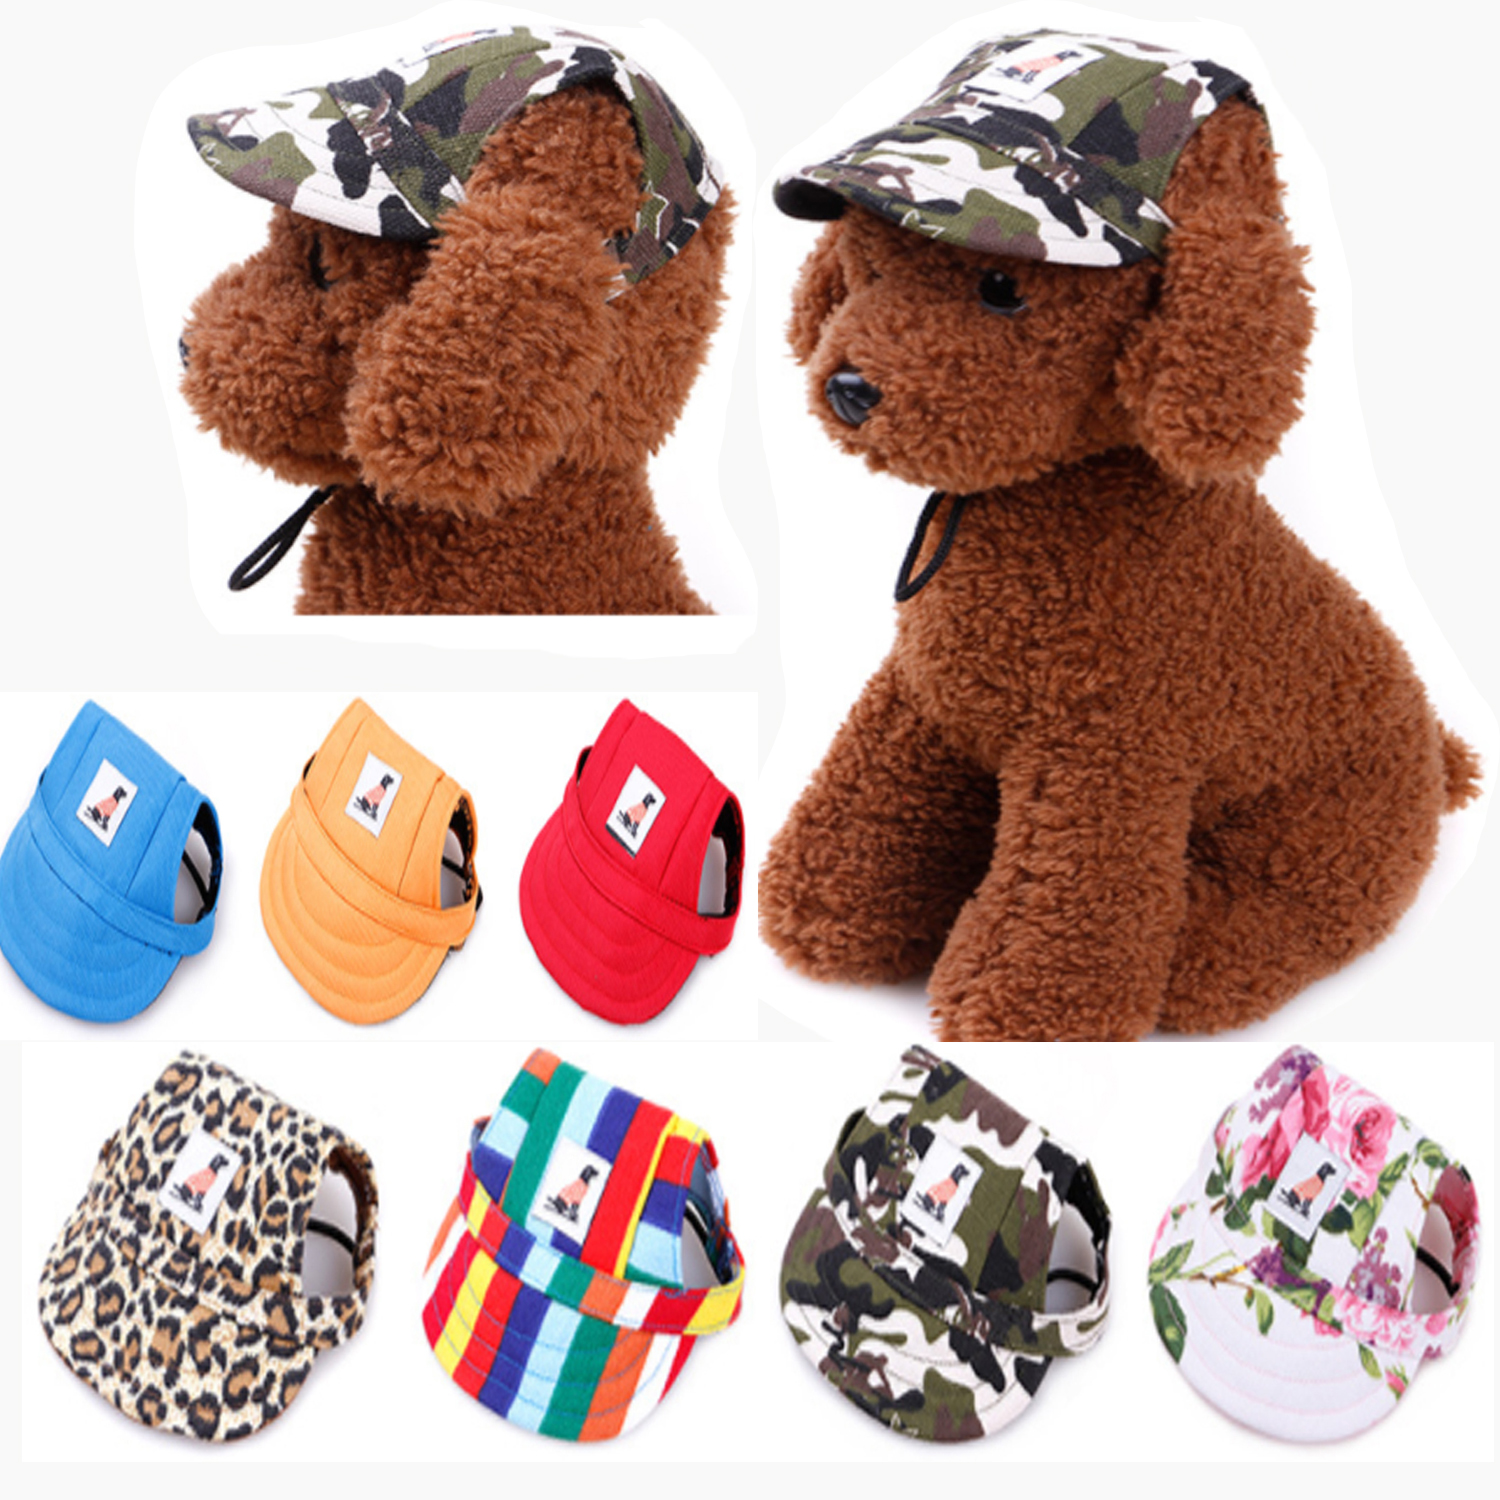 2019 Hot Sale Sun Hat For Dogs Cute Pet Casual Cotton Baseball Cap  Products